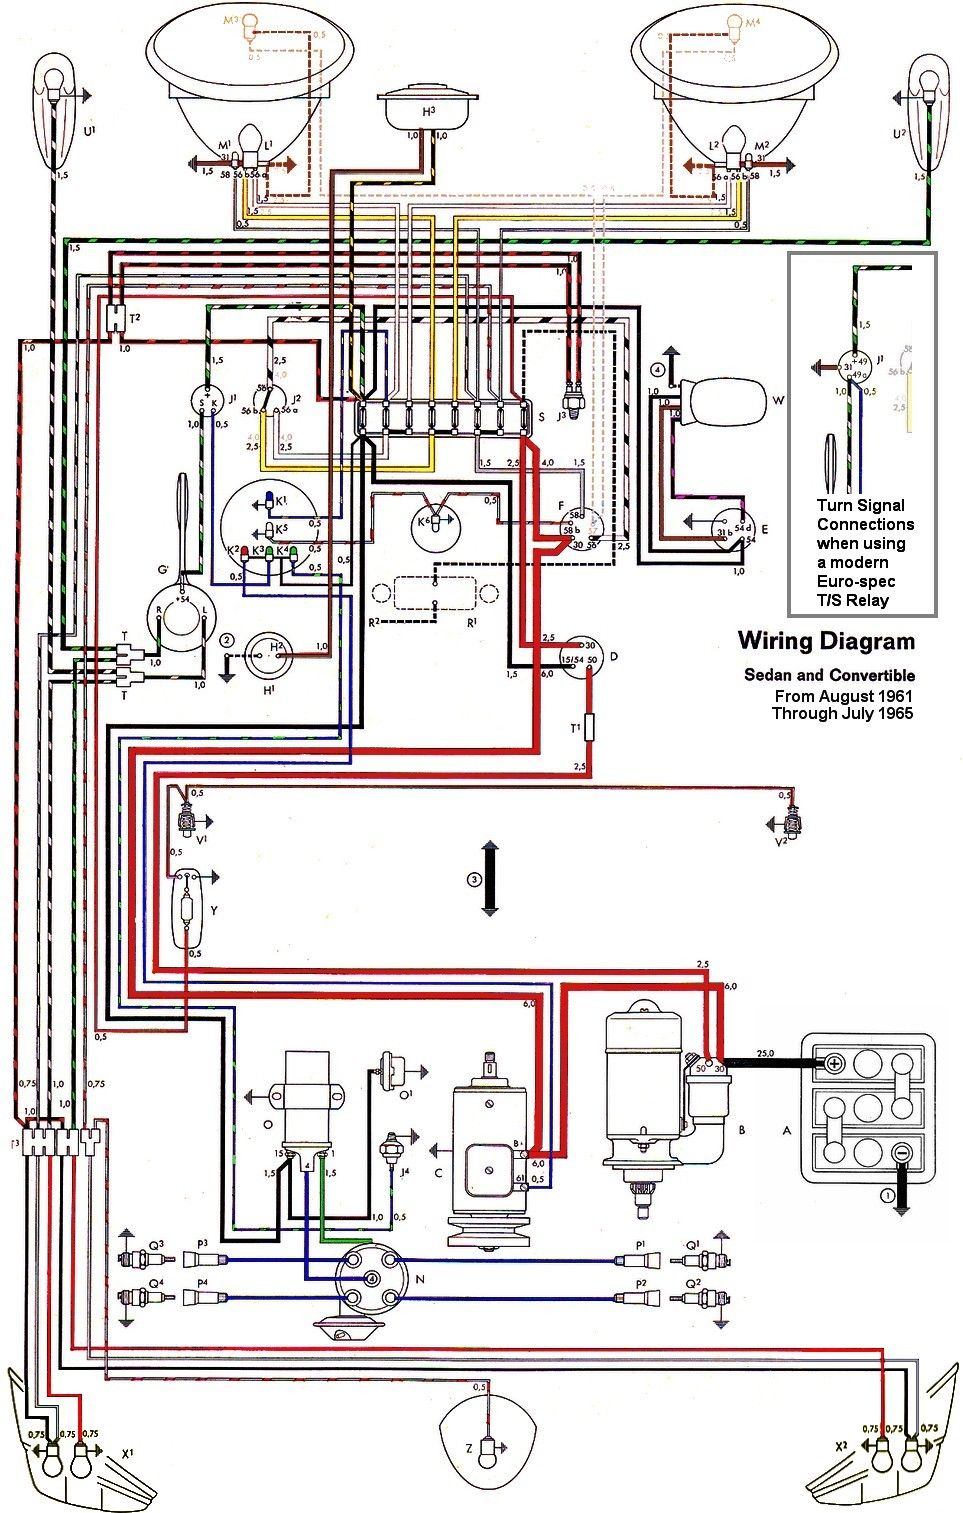 wiring diagram vw beetle sedan and convertible 1961 1965 vw rh pinterest com vw beetle wiring diagram 1973 vw beetle wiring diagram 1974